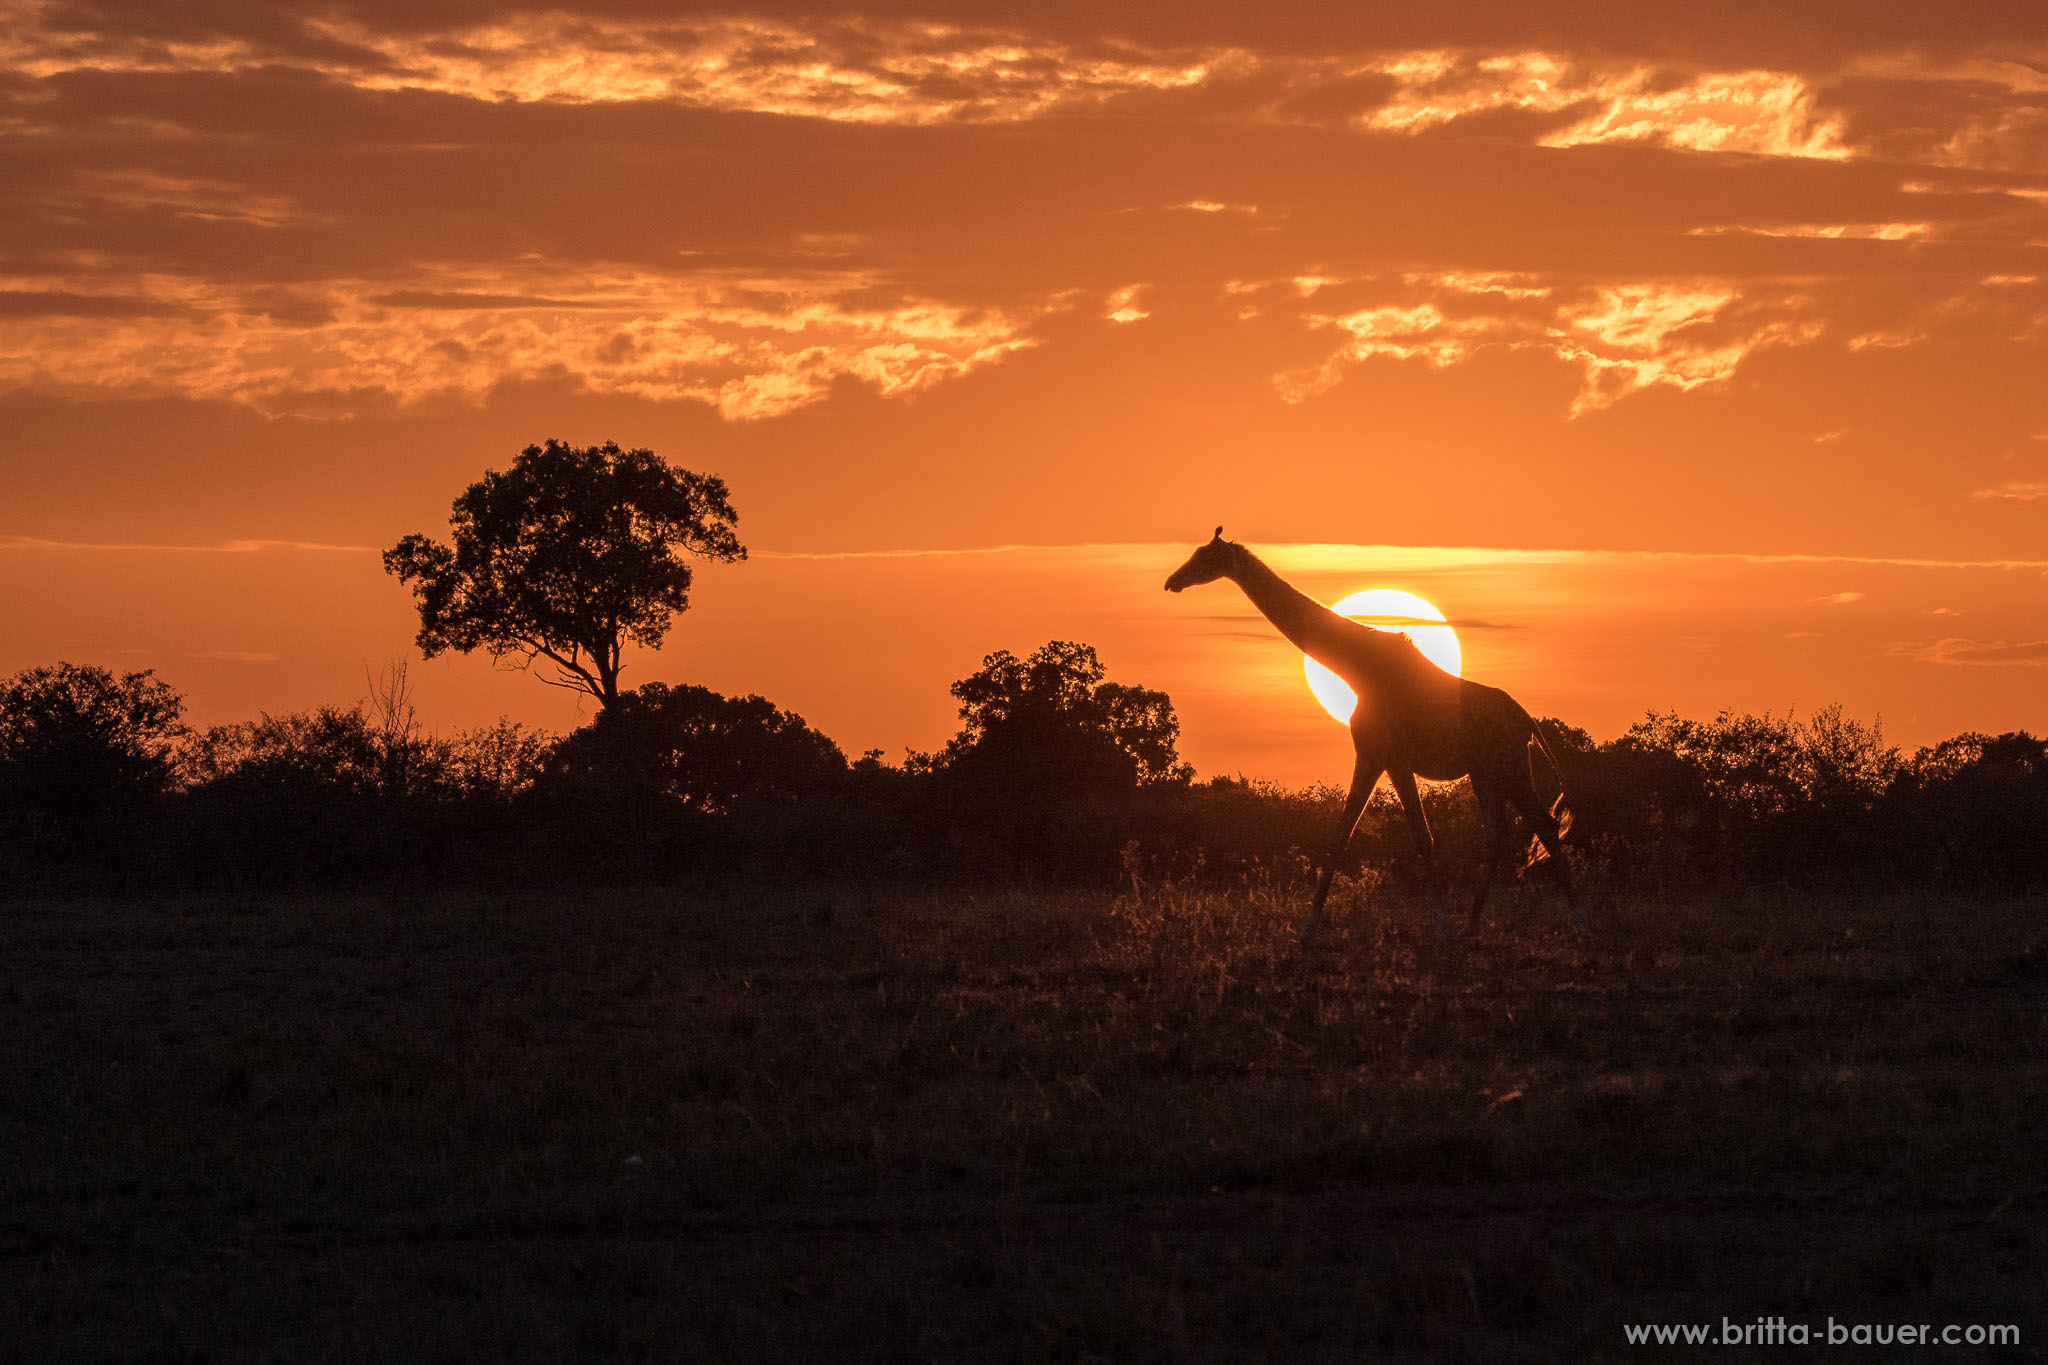 Giraffe (Giraffa) beim Sonnenaufgang nach einer regnerischen Oktobernacht. Giraffe at sunrise after a rainy night in October.